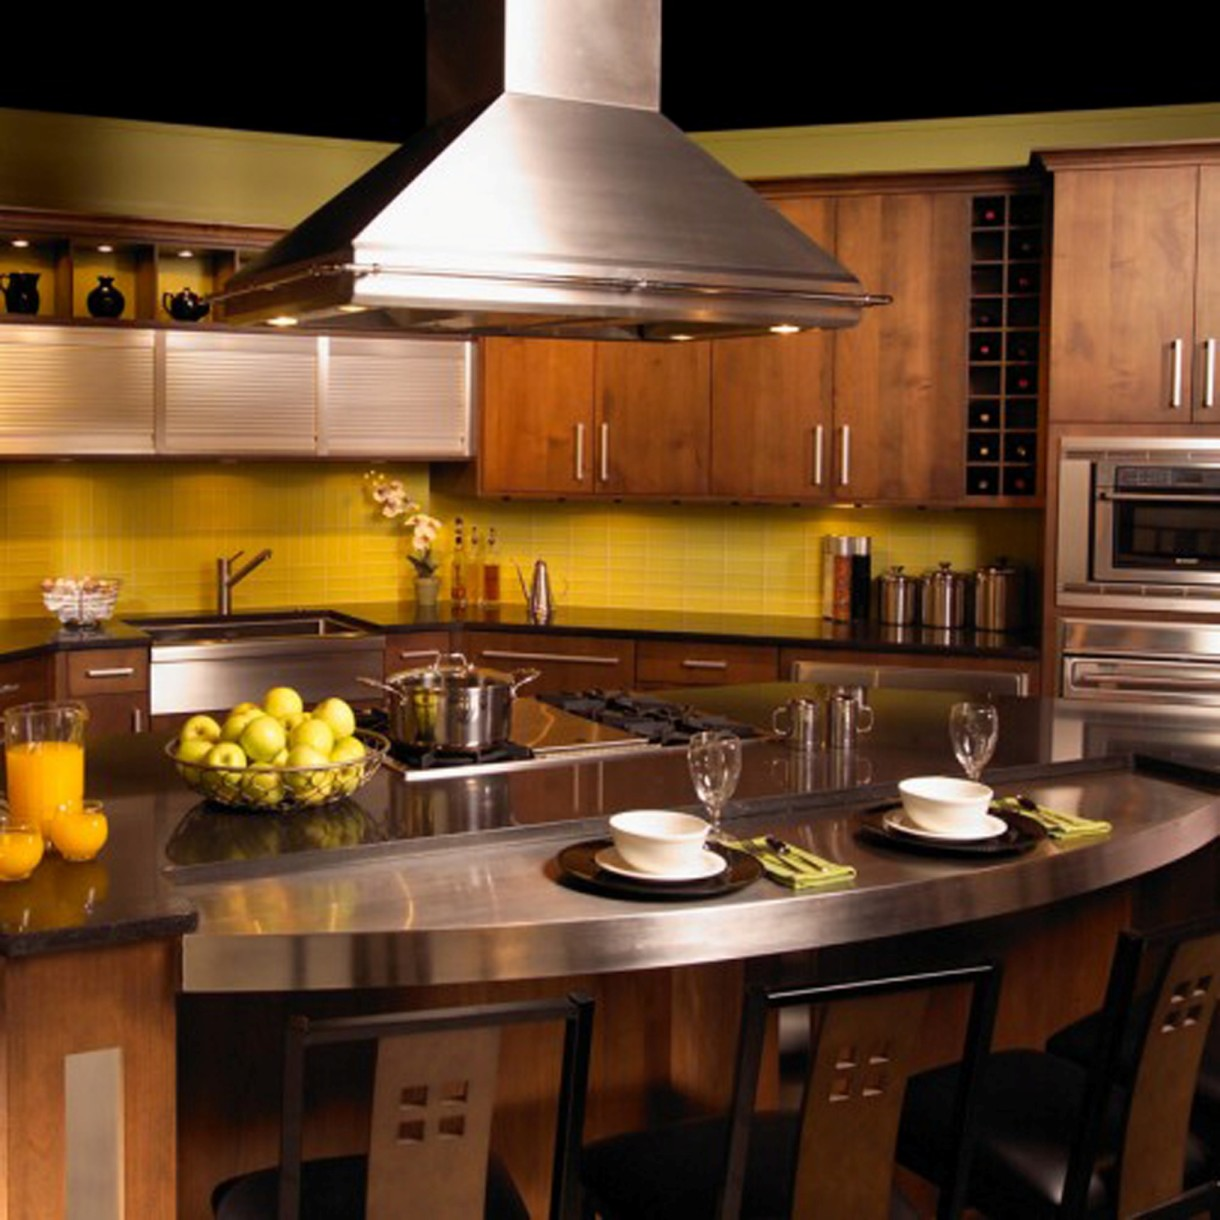 kitchen countertop inserts stainless steel kitchen countertops Kitchen Countertops Decorating Ideas Cool Counter Stools Metal